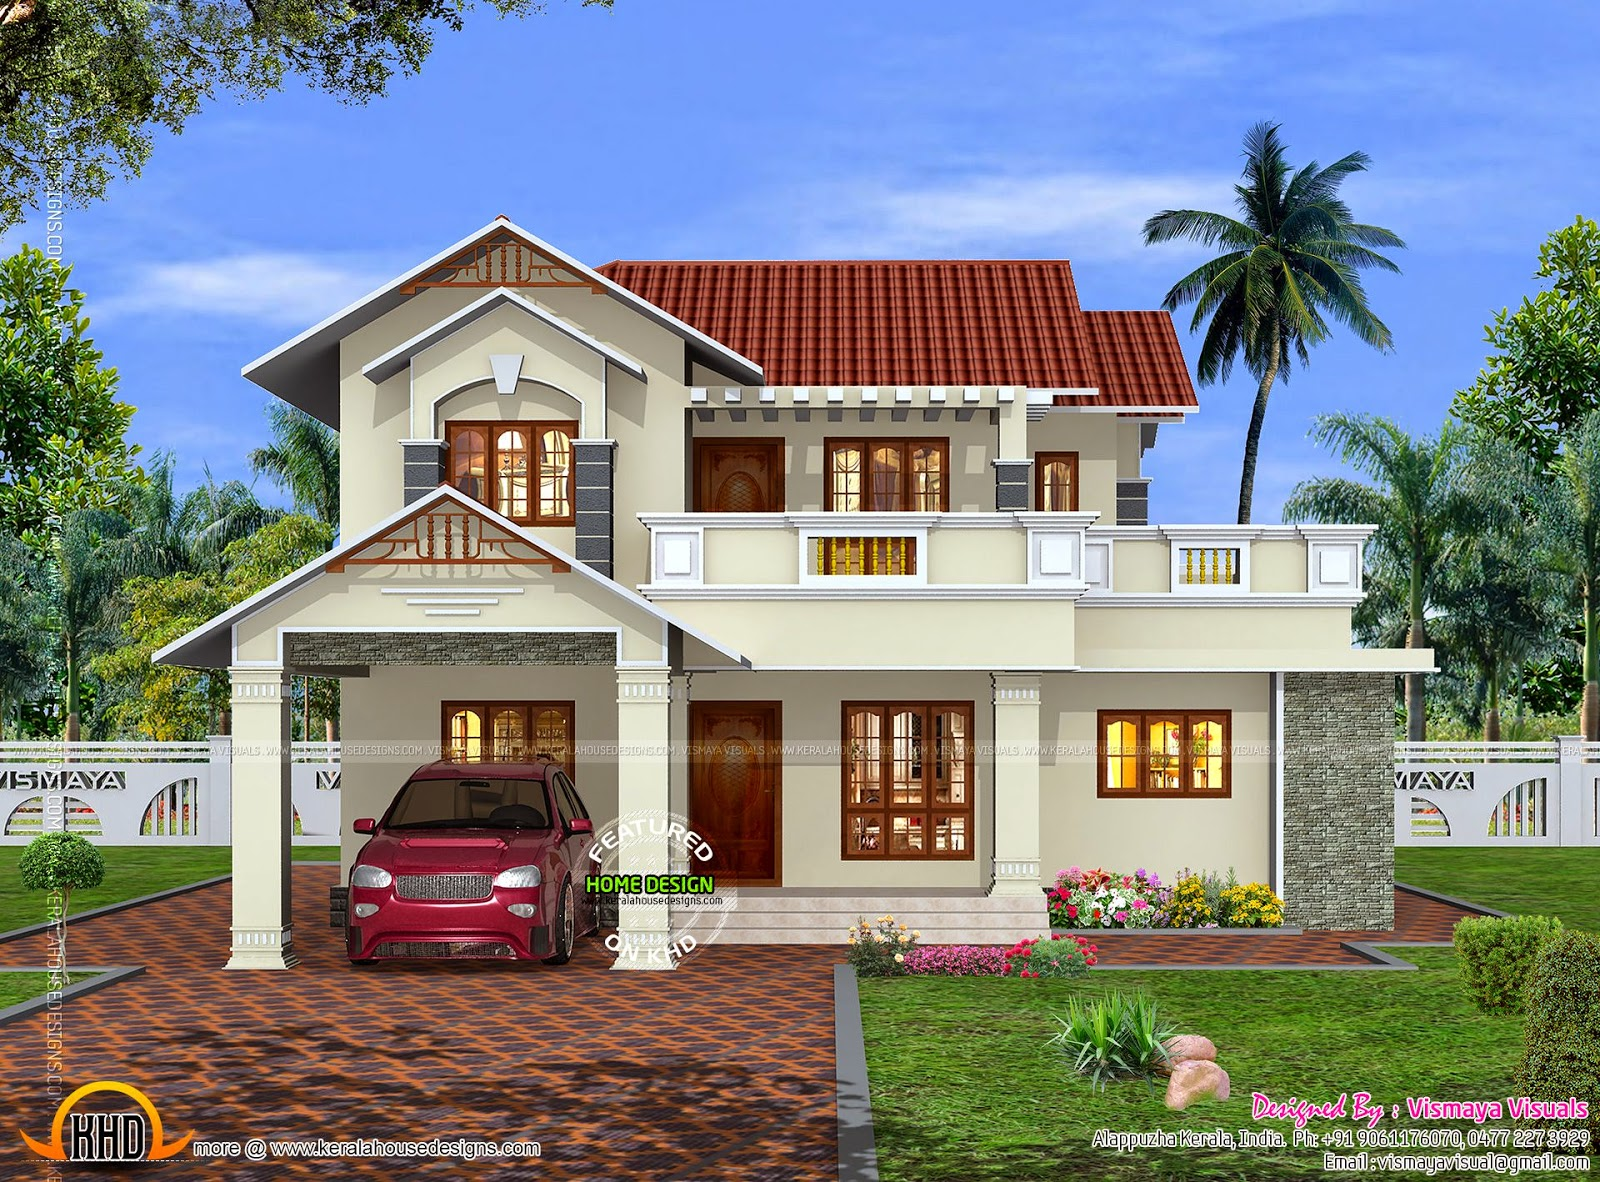 Kerala home beautiful exterior kerala home design and floor plans - Kerala exterior model homes ...